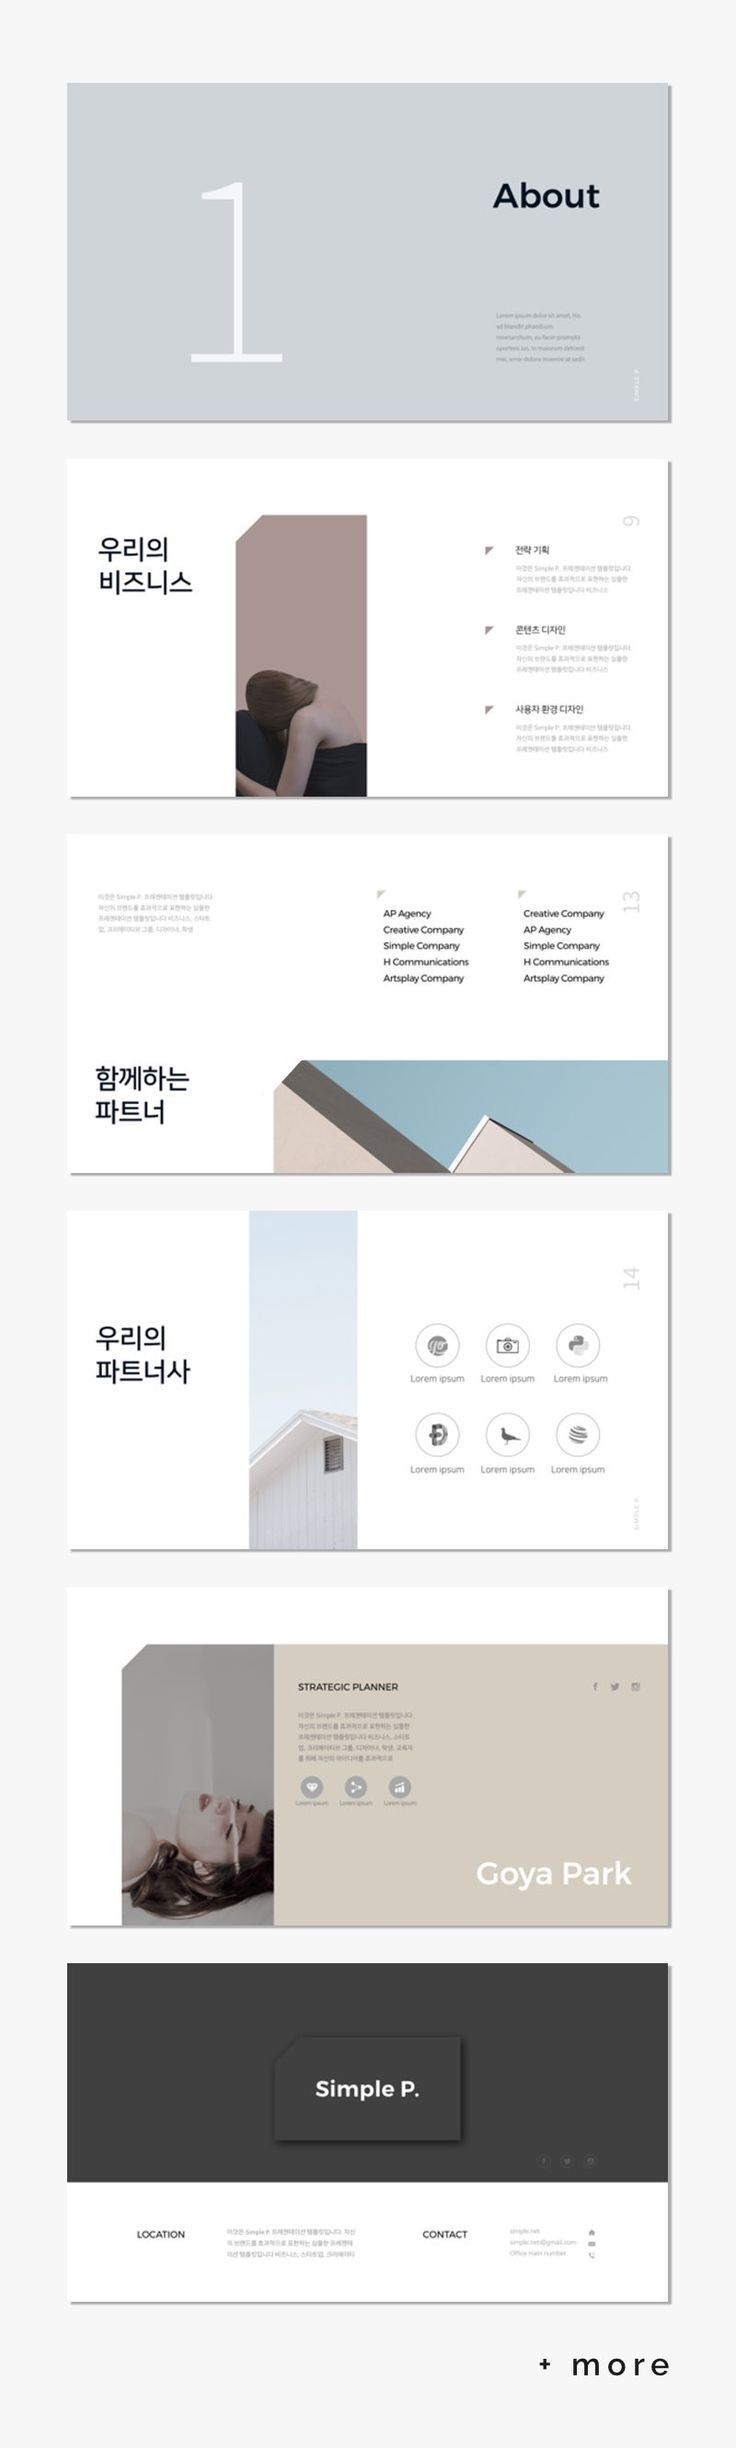 Simple Layout design: Simple PPT